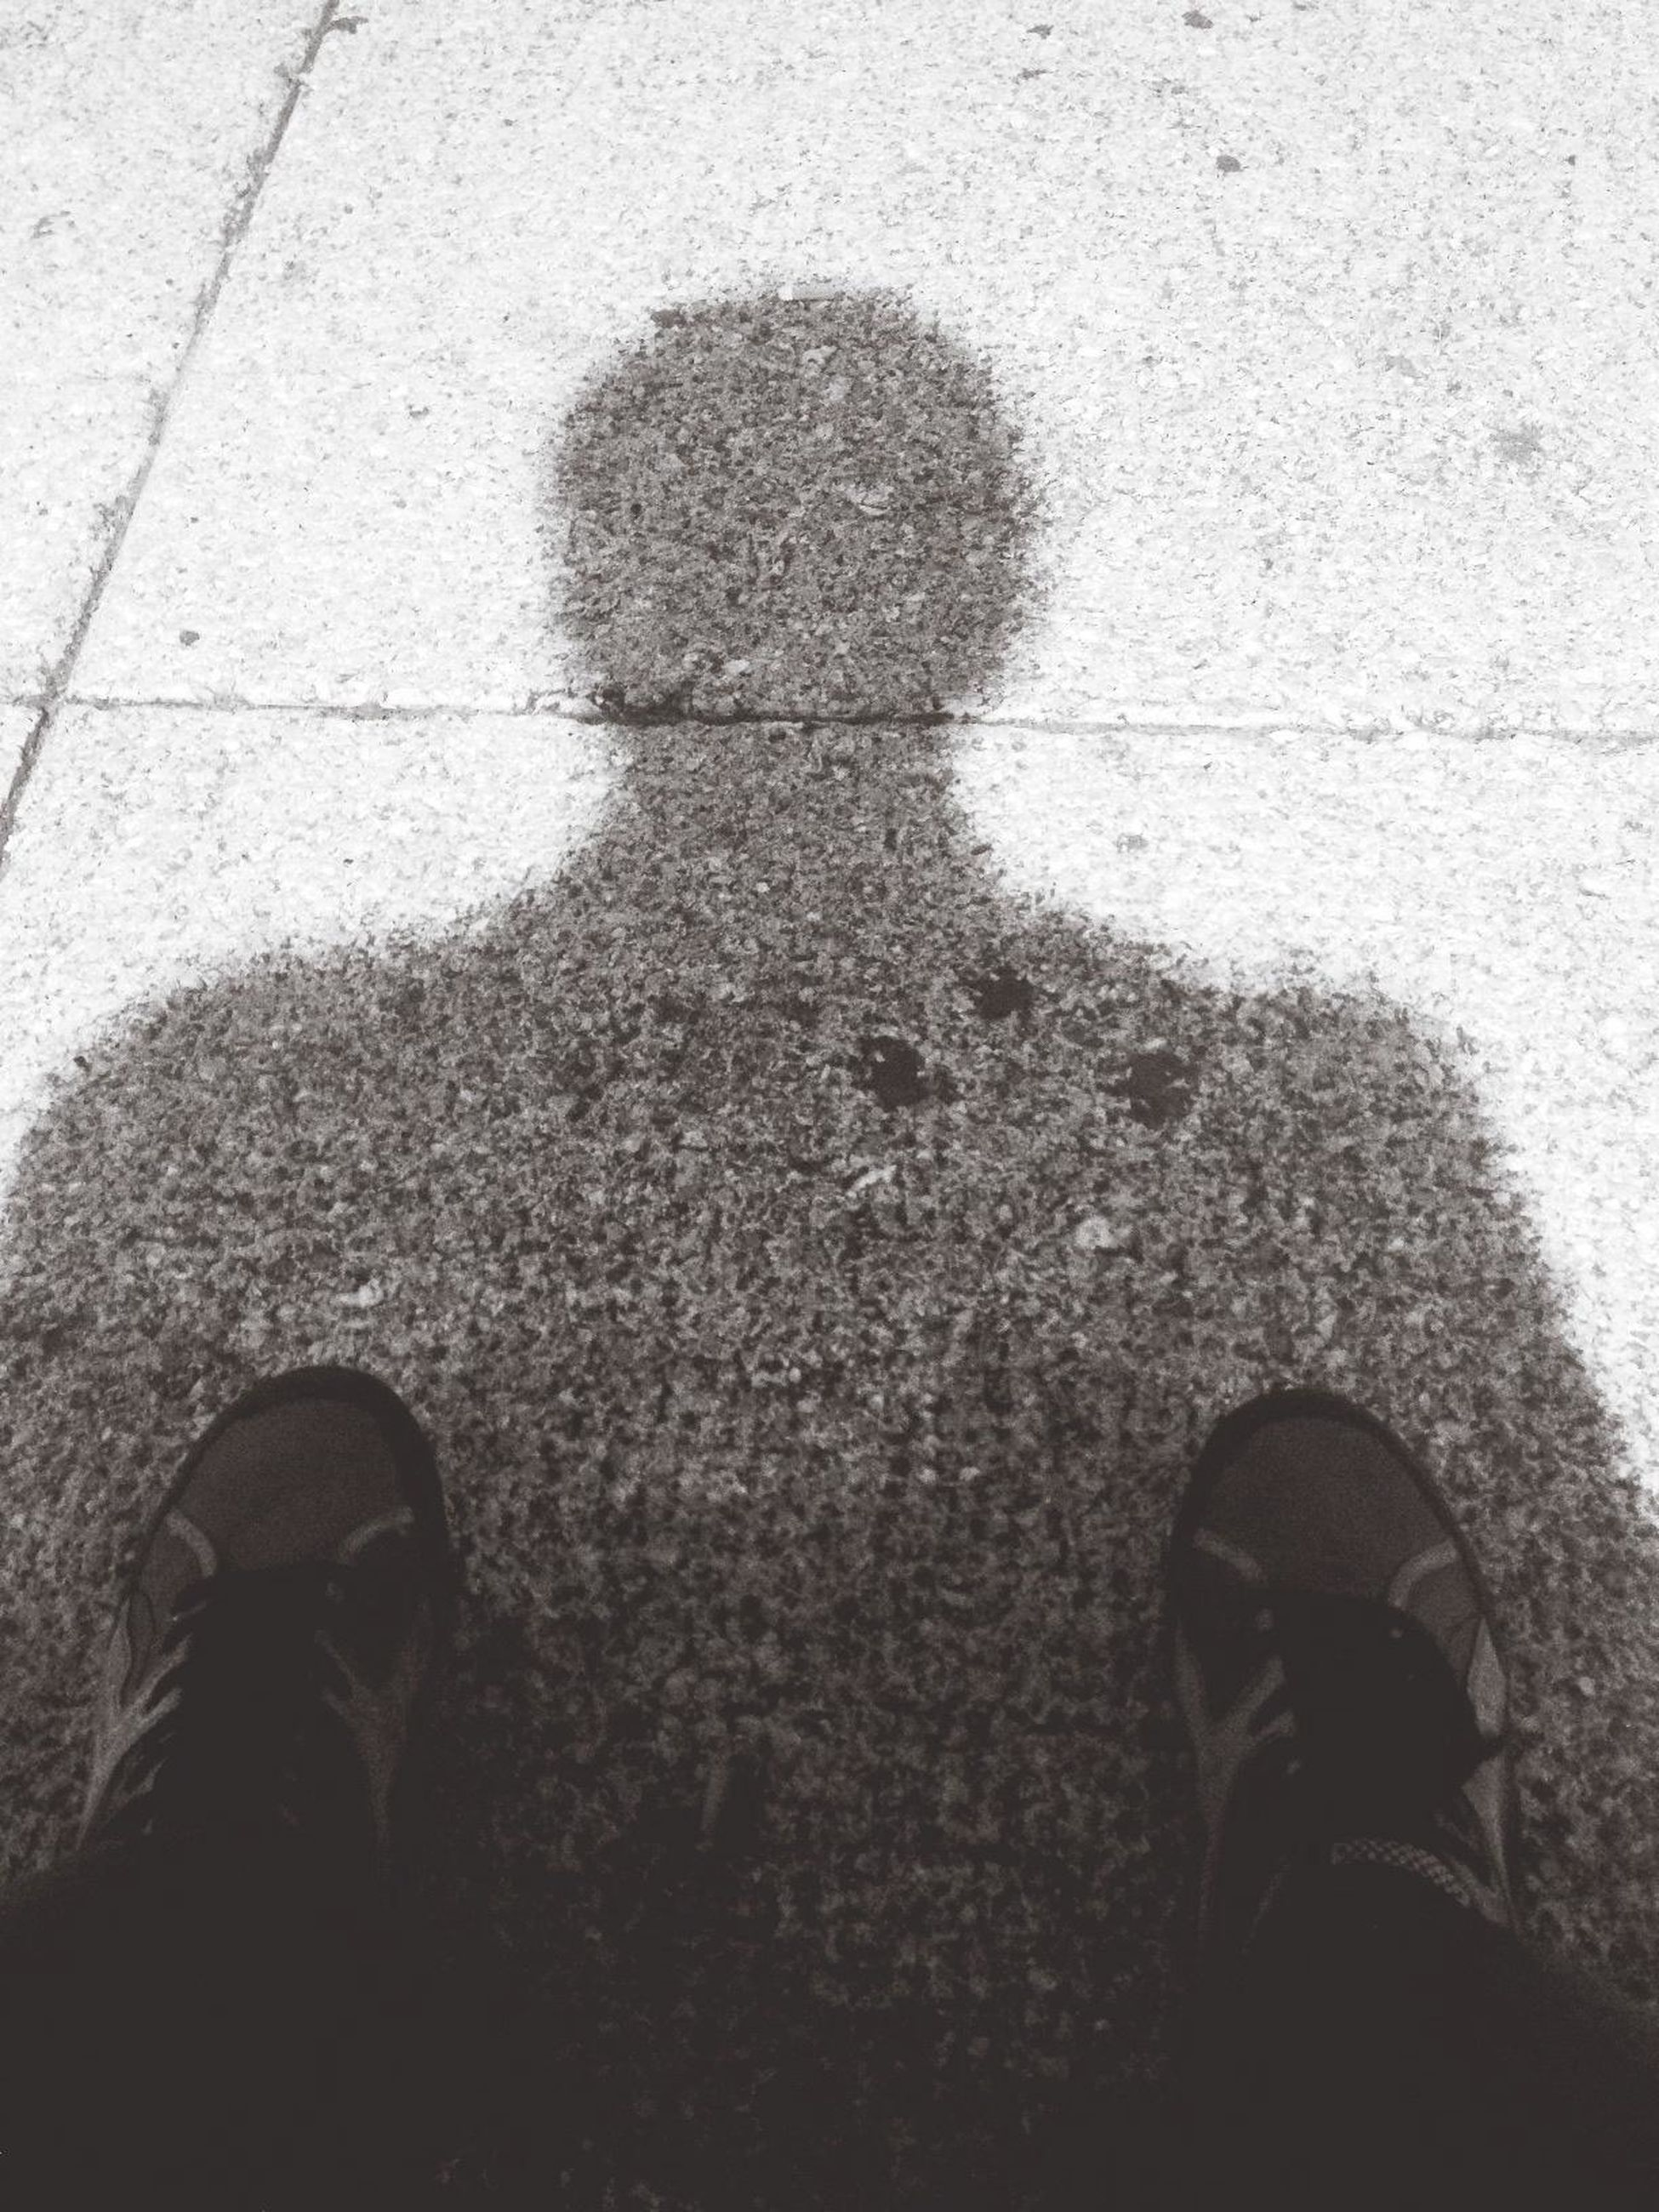 lifestyles, low section, shoe, high angle view, standing, person, men, shadow, street, personal perspective, leisure activity, unrecognizable person, focus on shadow, footwear, outdoors, human foot, day